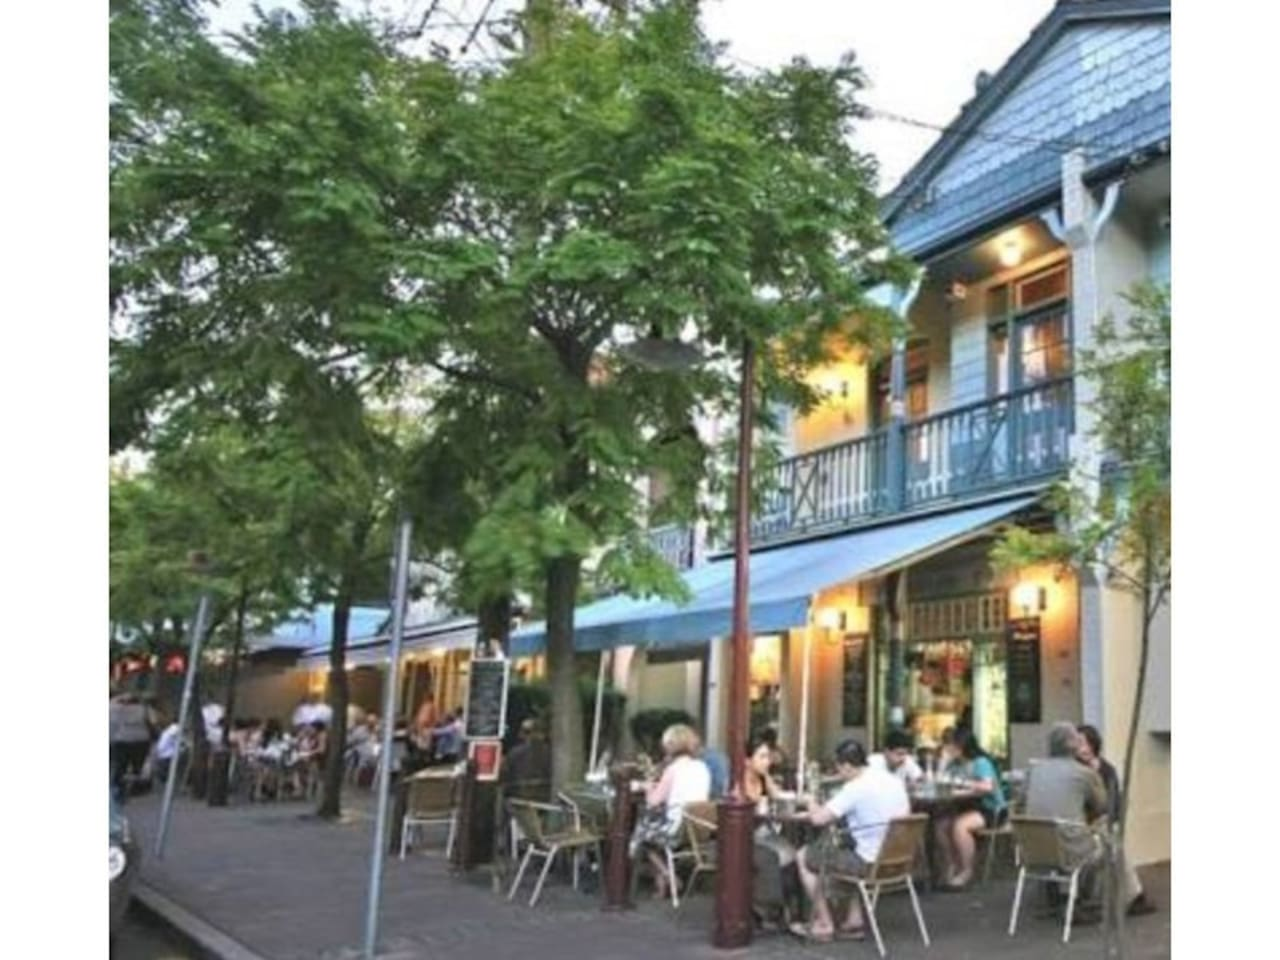 McMahons Point - cafe and restaurant strip 5 mins walk (350m)